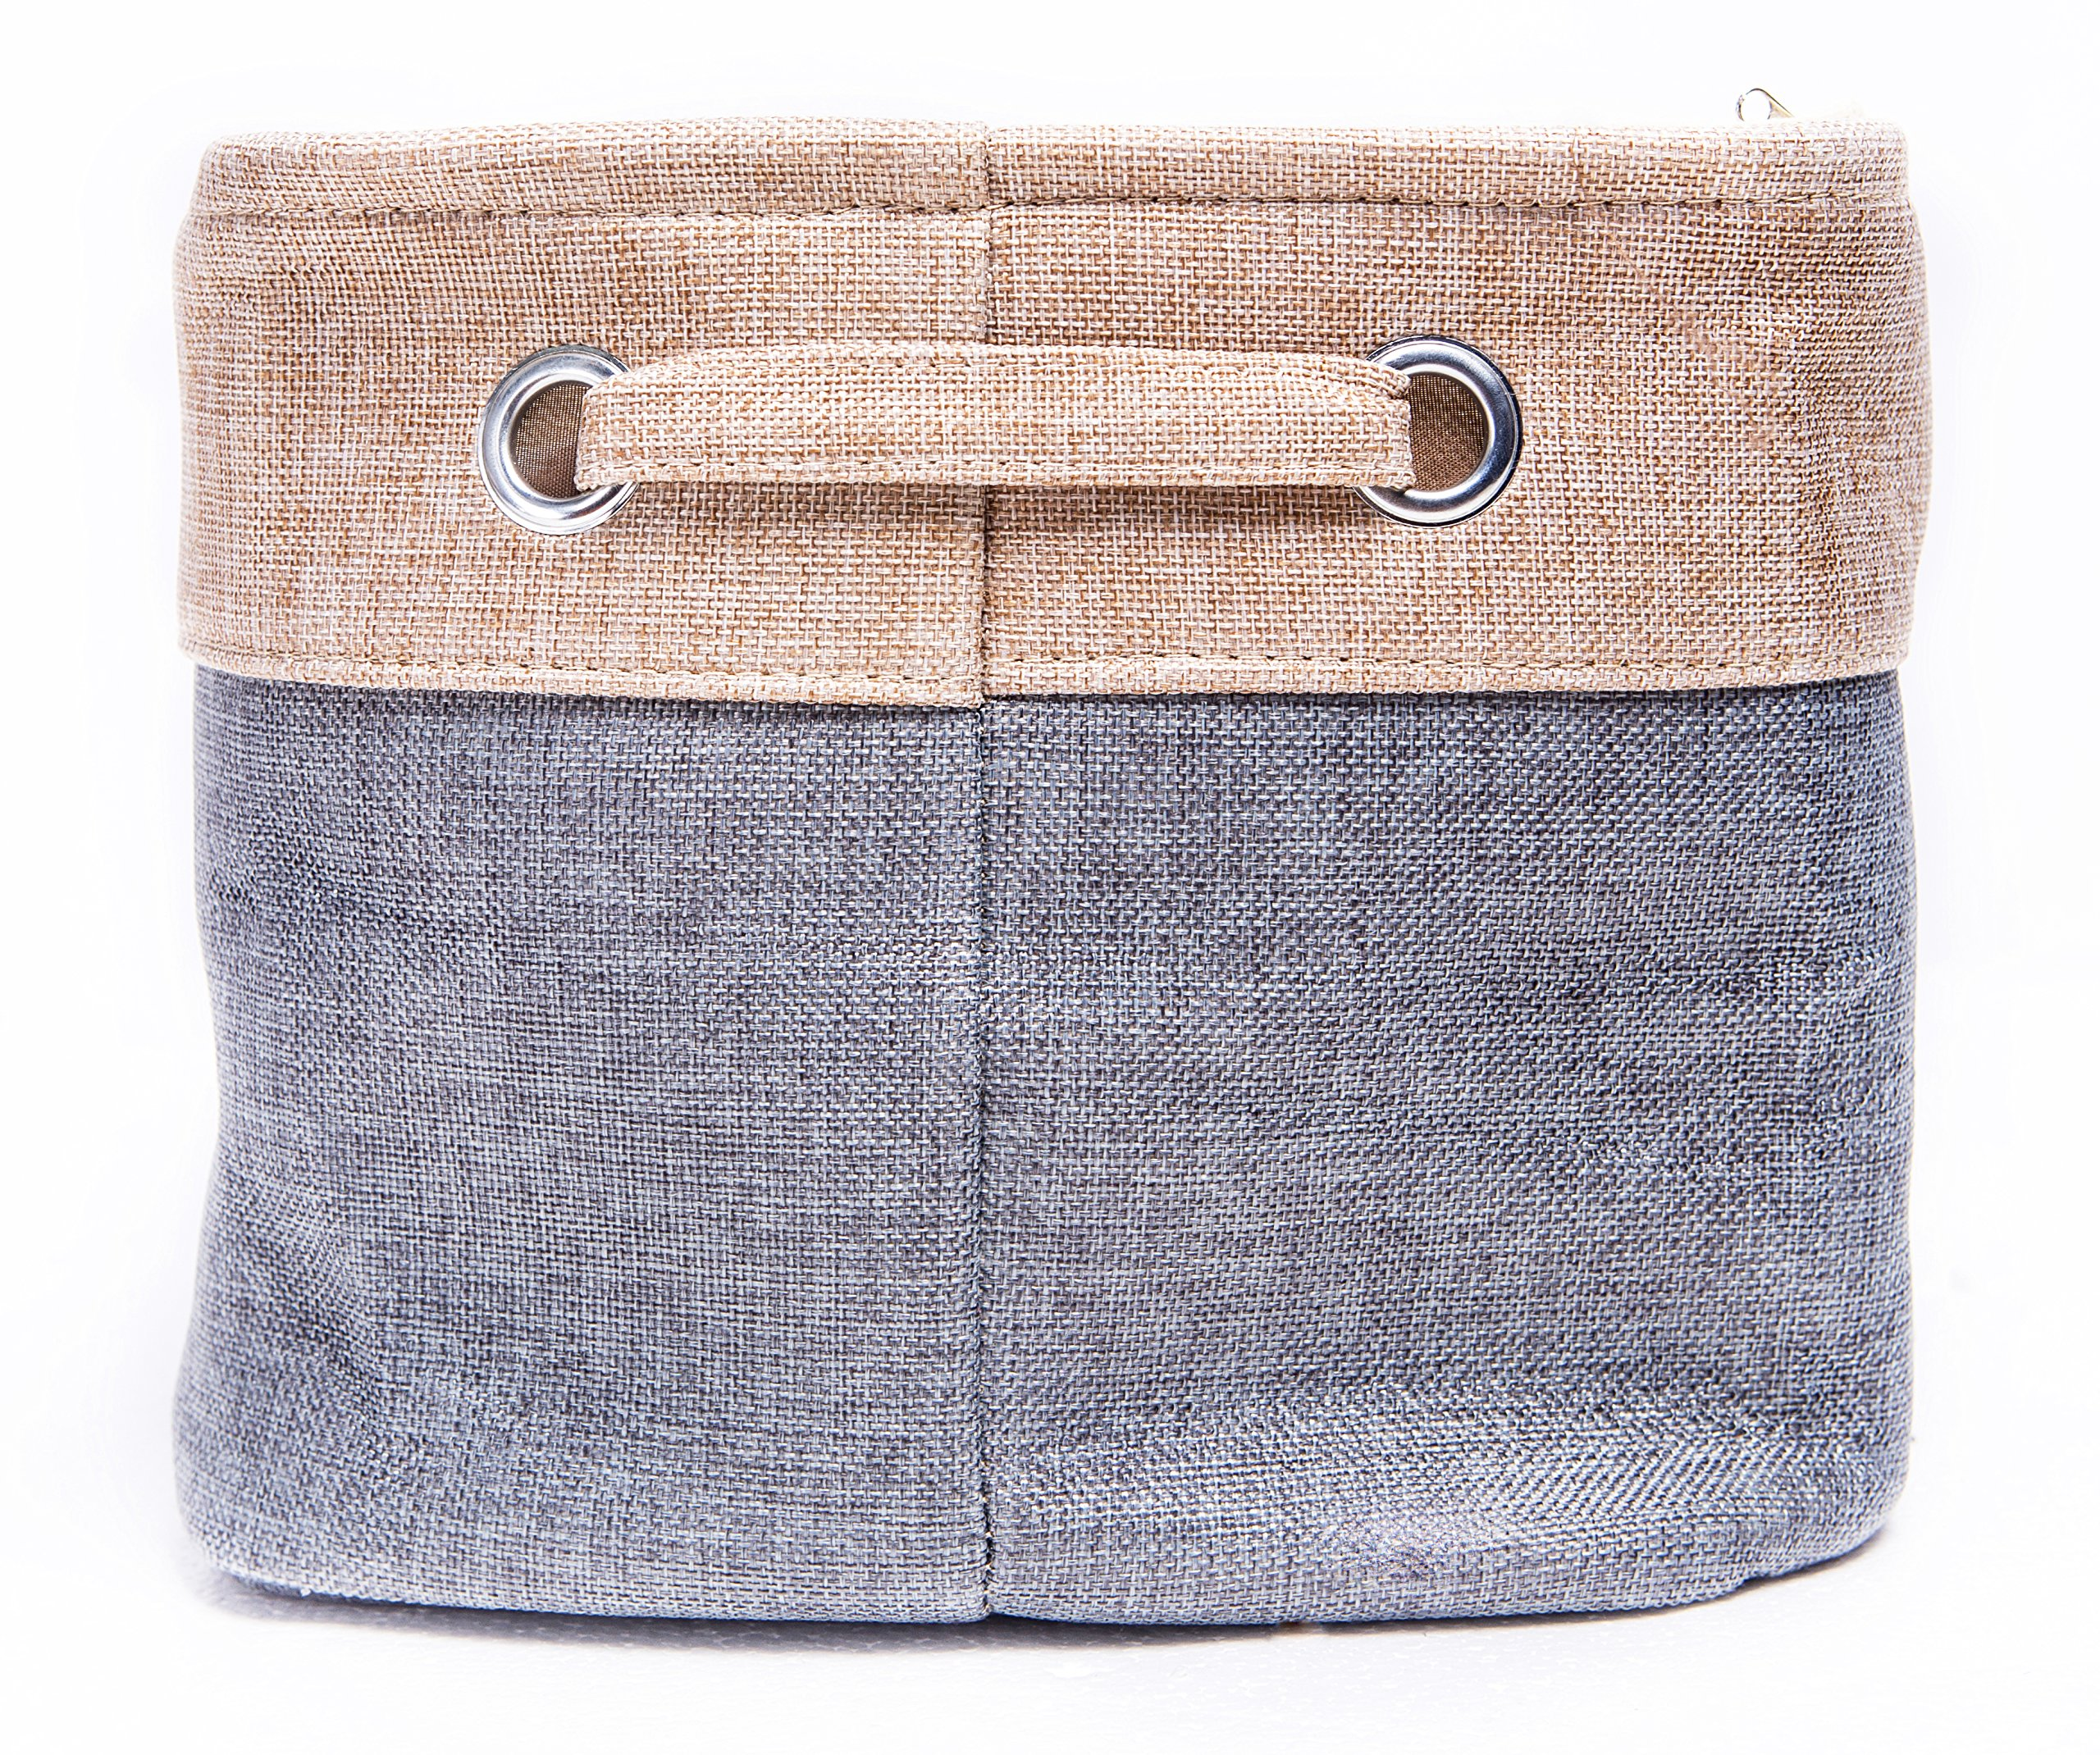 "Amelitory Storage Bins Foldable Basket Fabric Cube Collapsible Organizer Cotton Linen Set of 3 (Multi) - Set of 3 storage cubes for organizing home and office clutter 14.5"" x 10"" x 8.5"" Large capacity,providing you a good space-saving solution Durable and foldable, 2 sturdy handle with metal eyelets for grabbing or pulling from shelves, easy to carry or store - living-room-decor, living-room, baskets-storage - A1yDfRl47HL -"